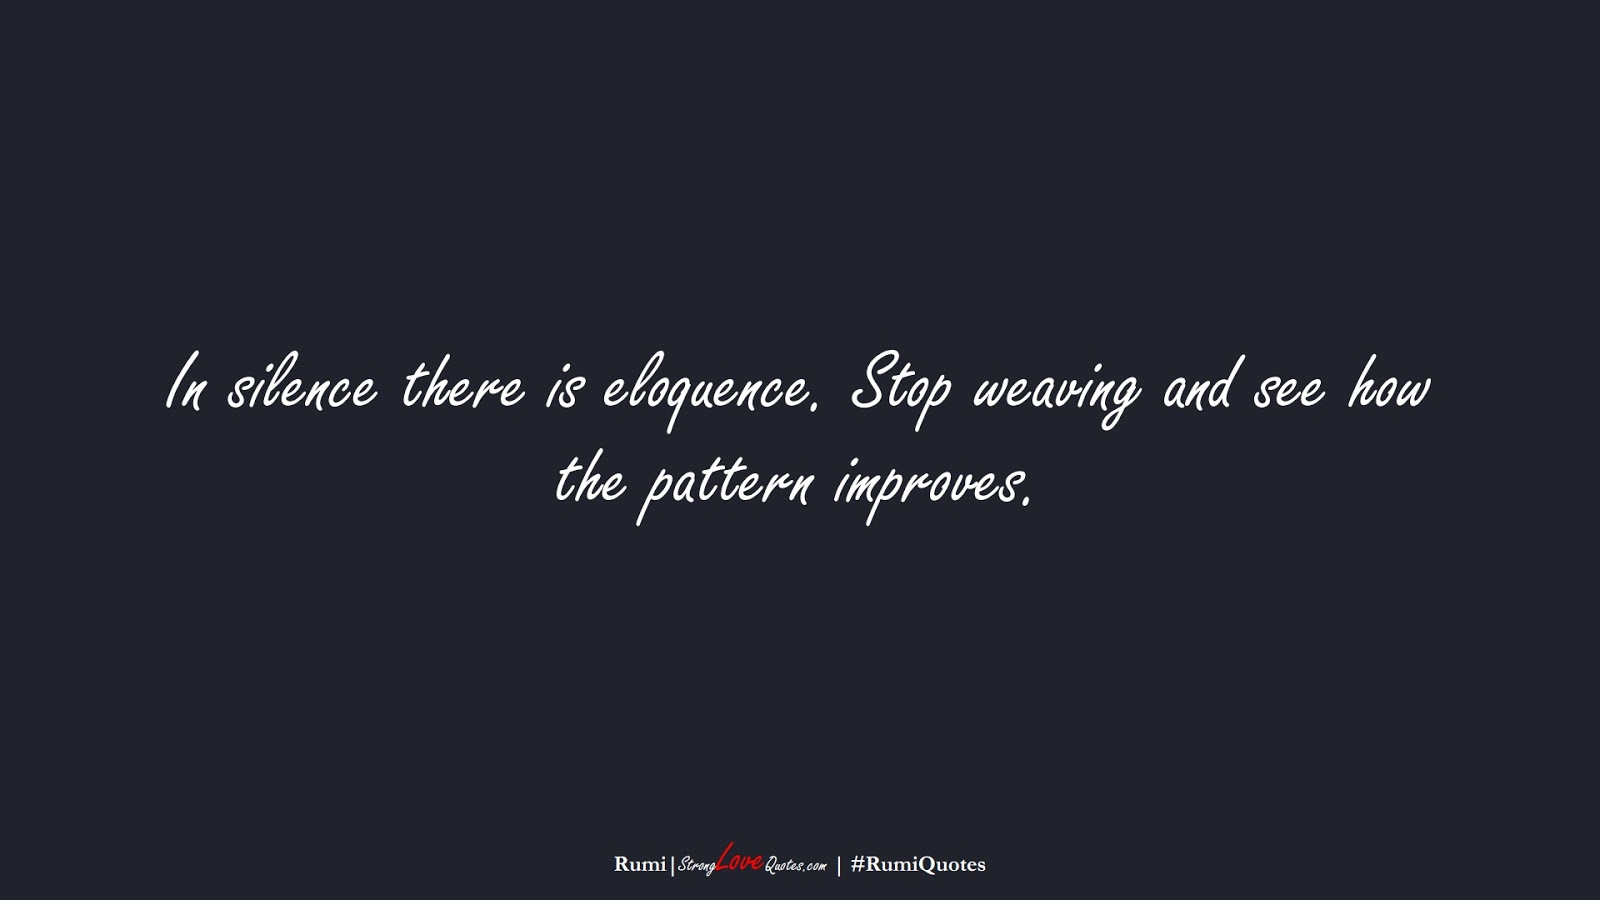 In silence there is eloquence. Stop weaving and see how the pattern improves. (Rumi);  #RumiQuotes